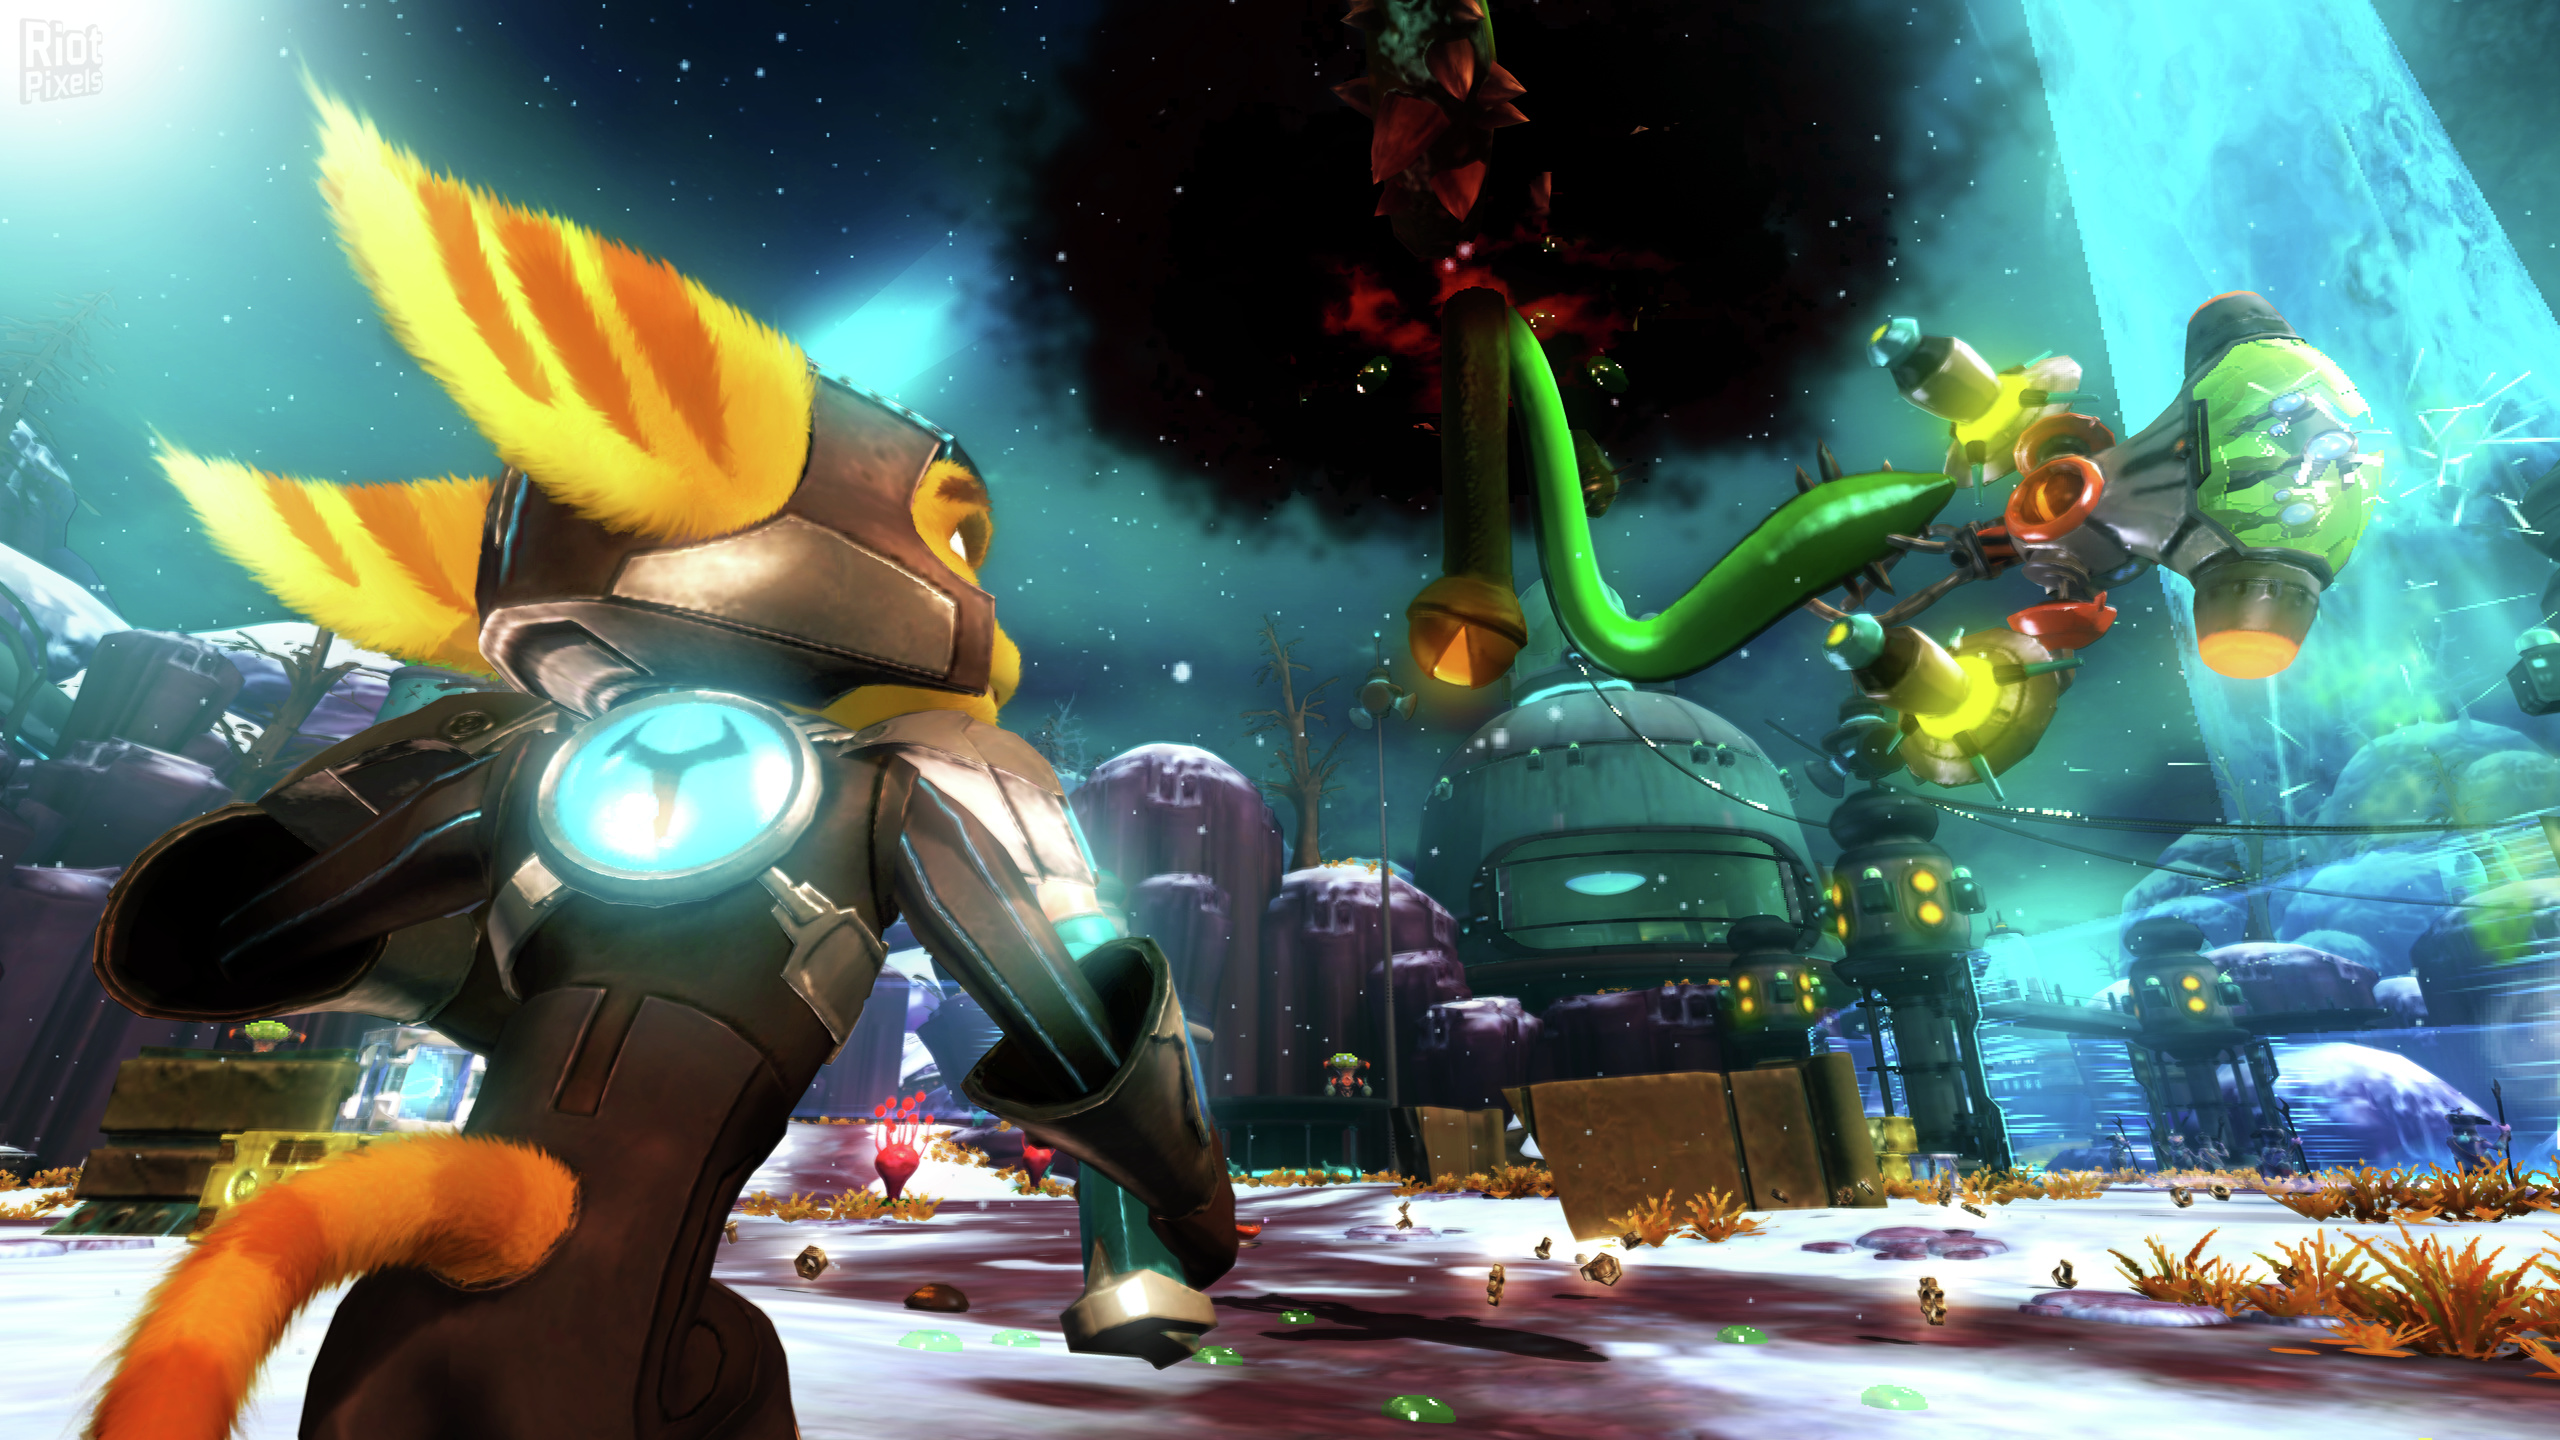 Image result for ratchet and clank a crack in time1920x1080